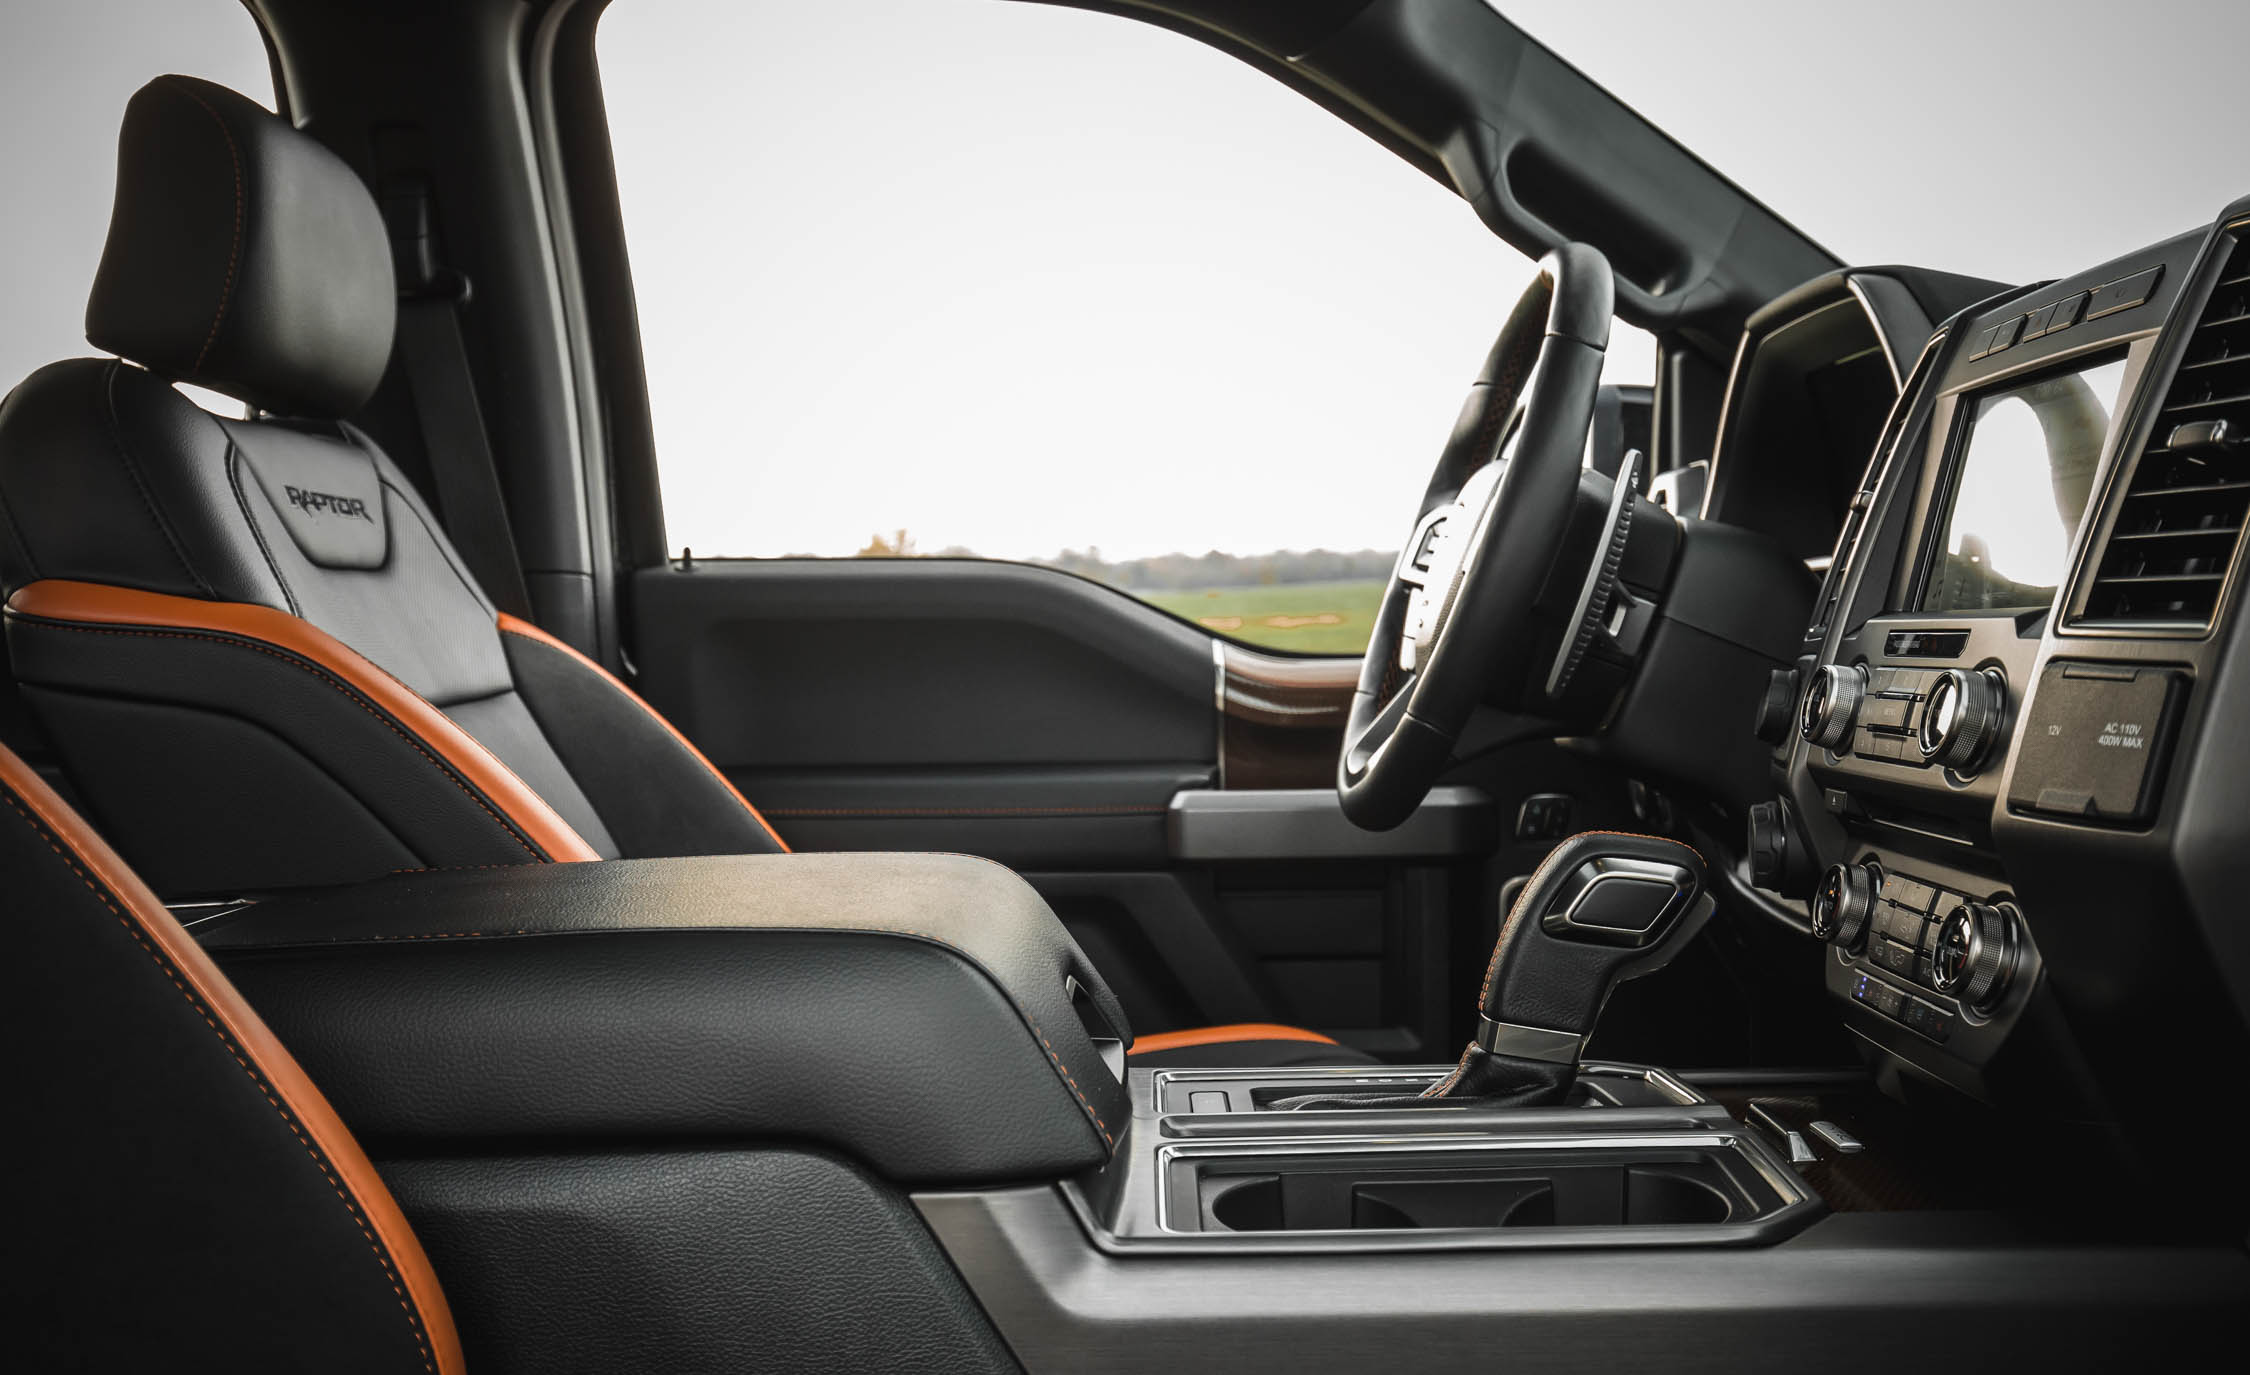 2017 Ford F 150 Raptor SuperCrew Interior Seats Driver (View 22 of 47)